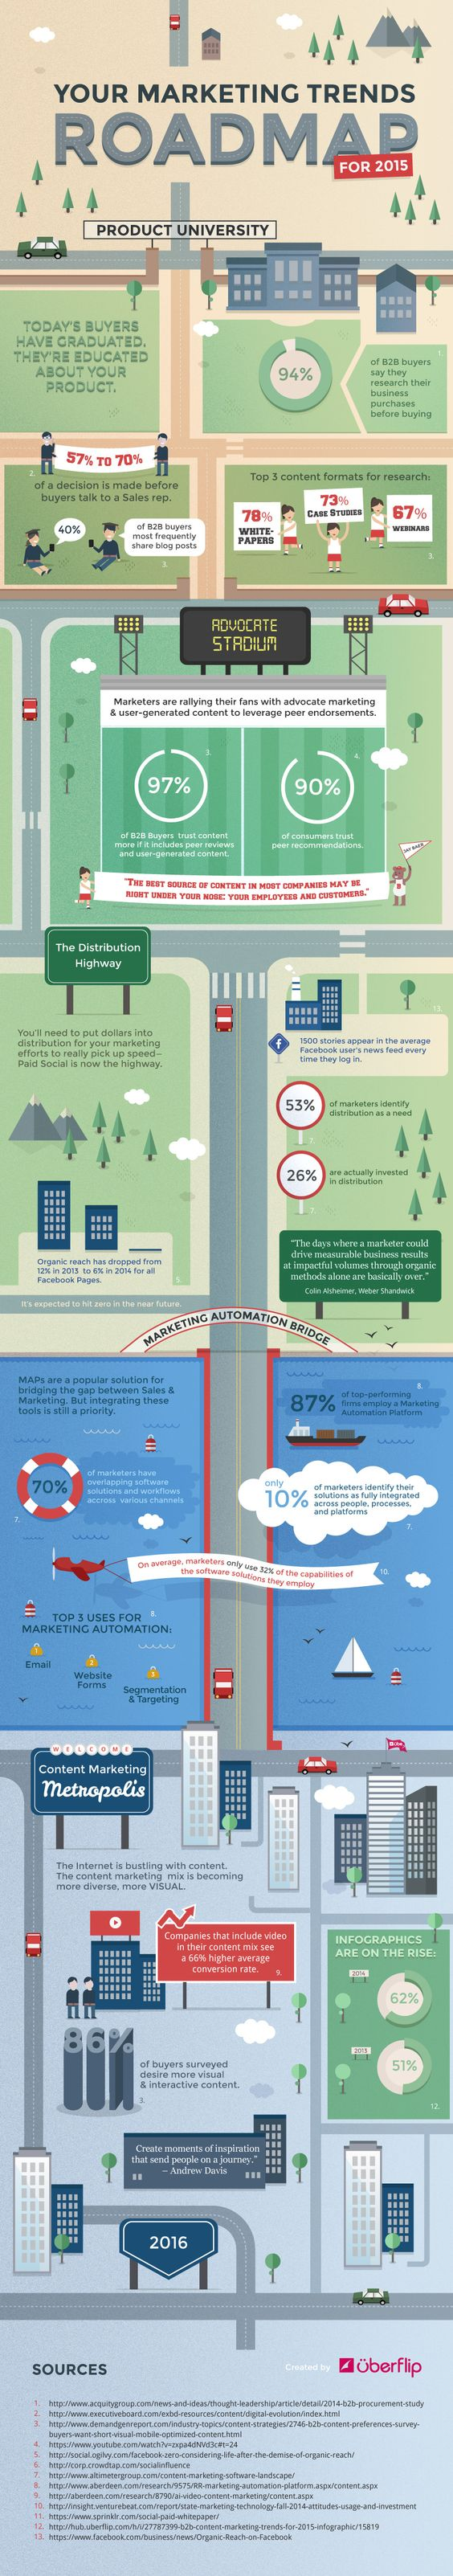 Marketing, Trends and Infographic on Pinterest